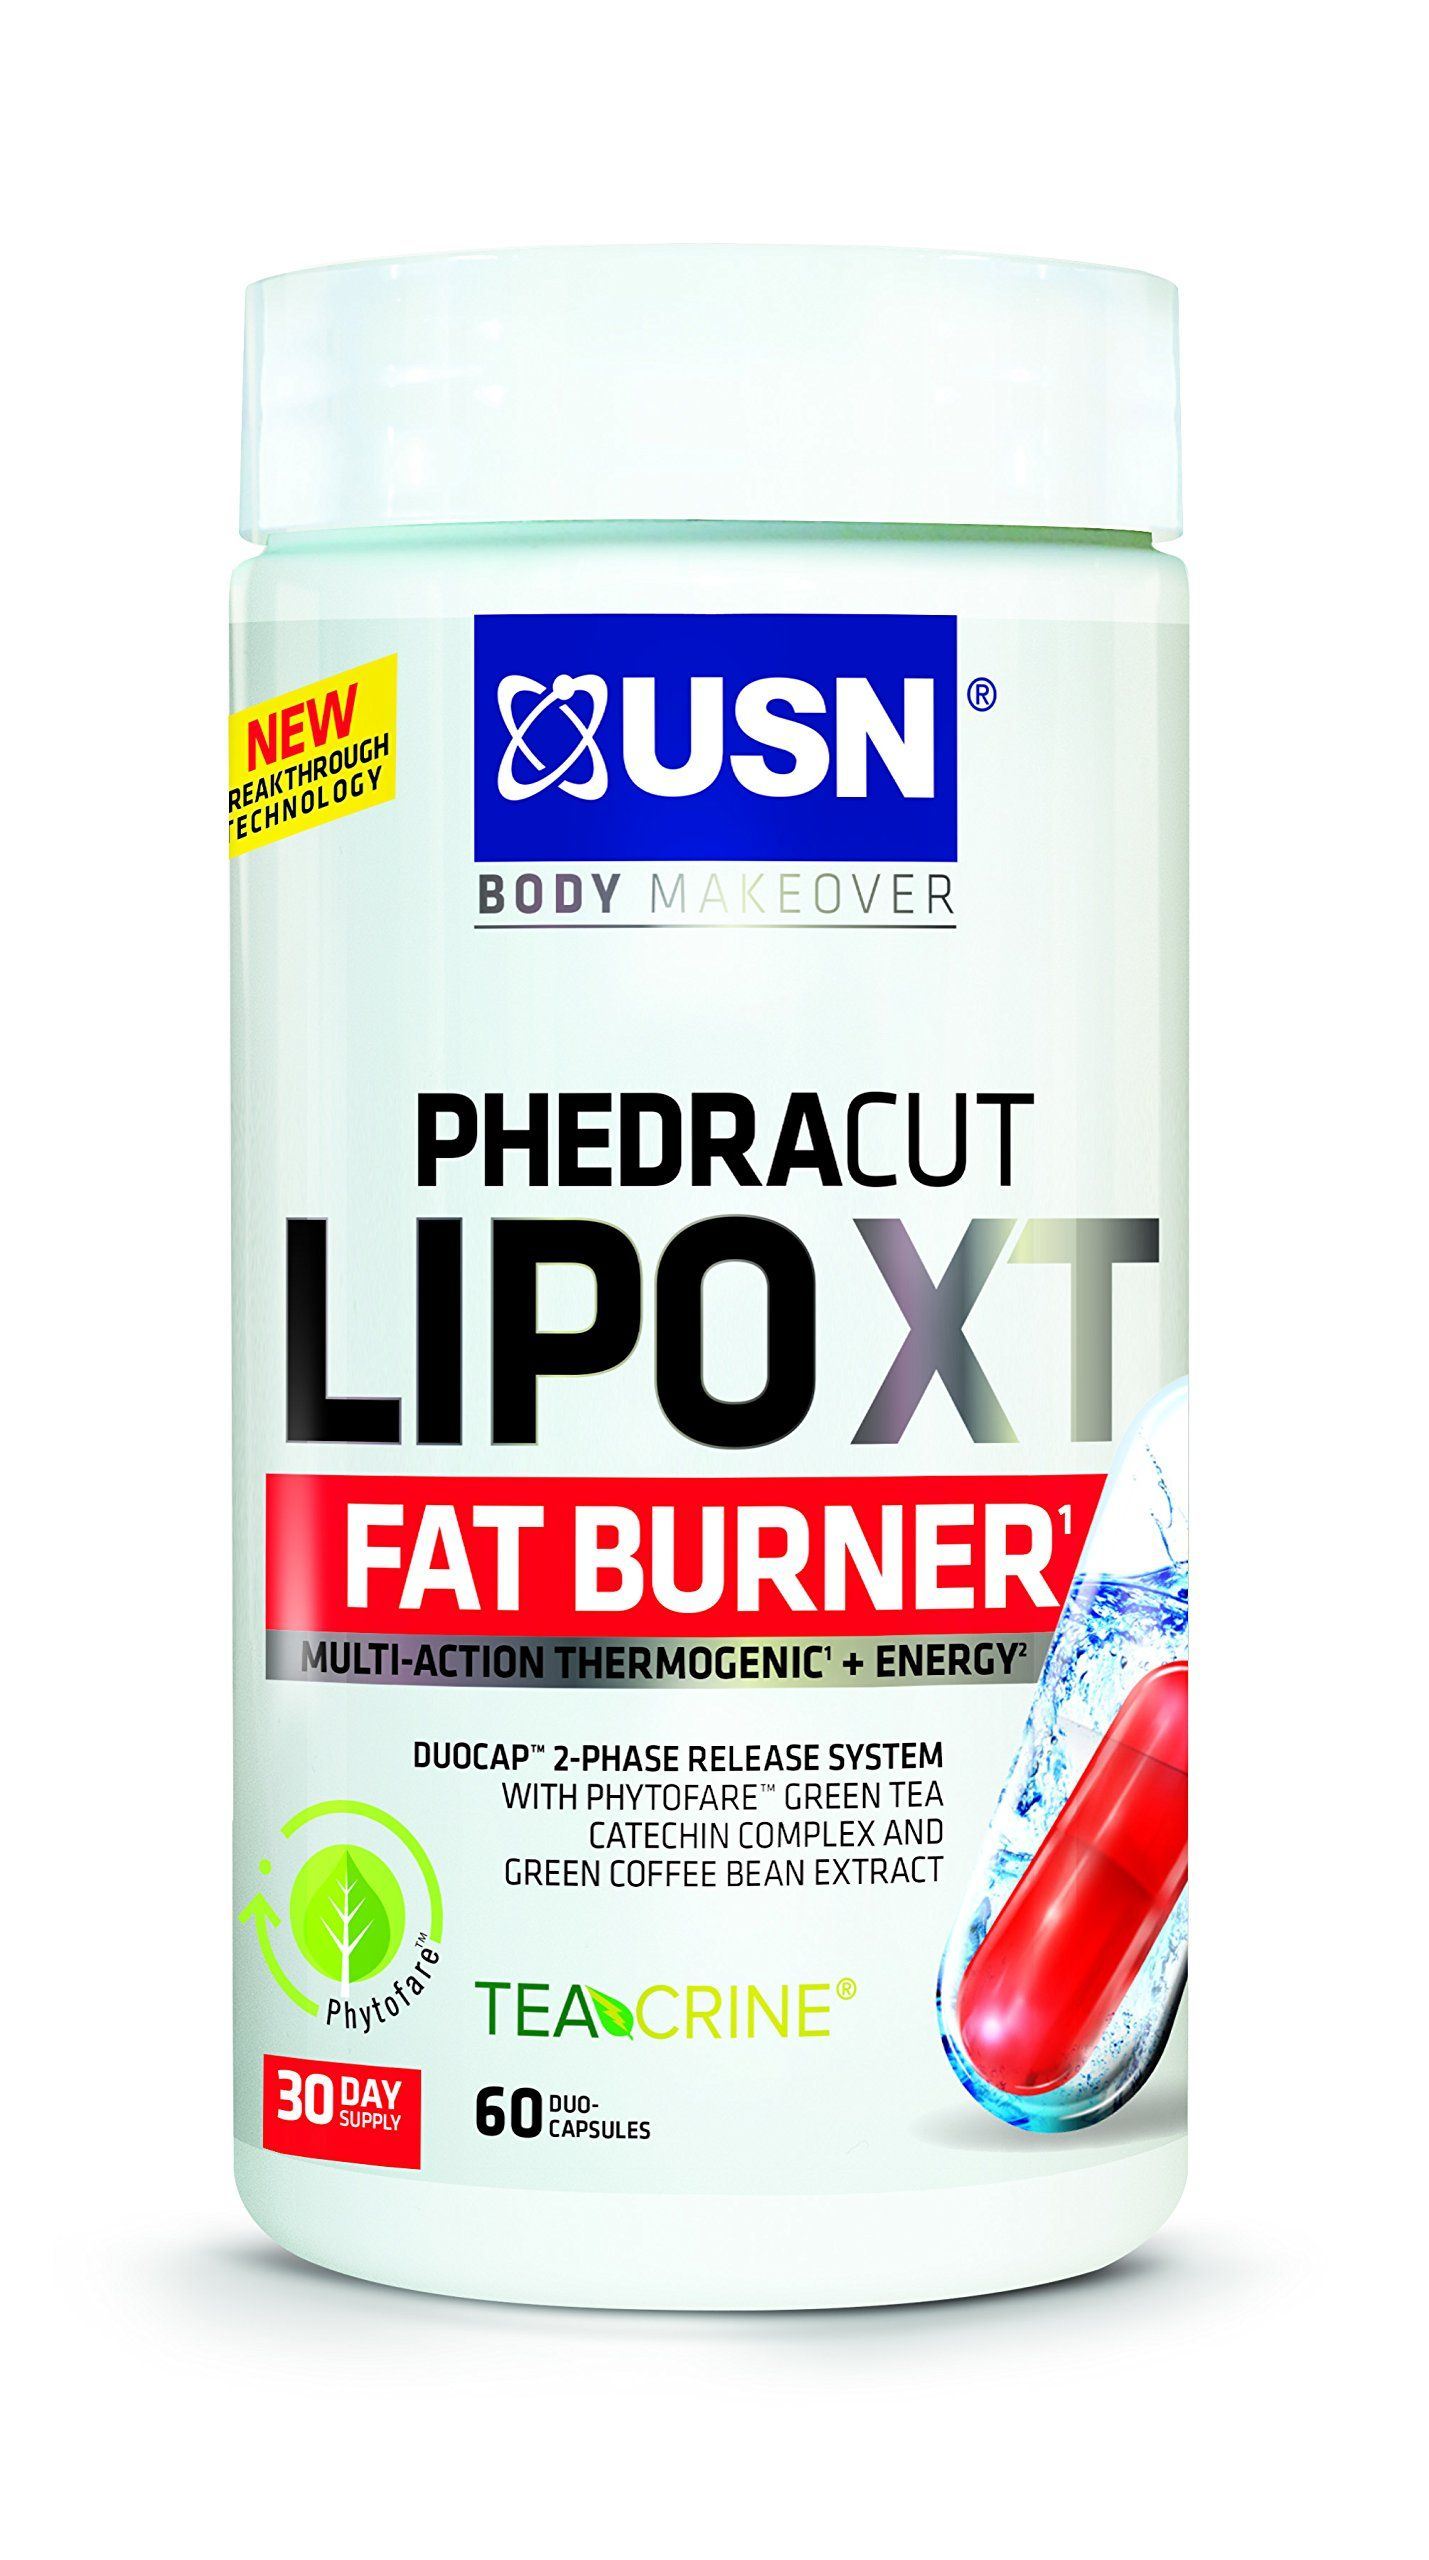 Usn Phedracut Lipo Xt Fat Burner You Can Find More Details By Klinning Green Coffee Blend Visiting